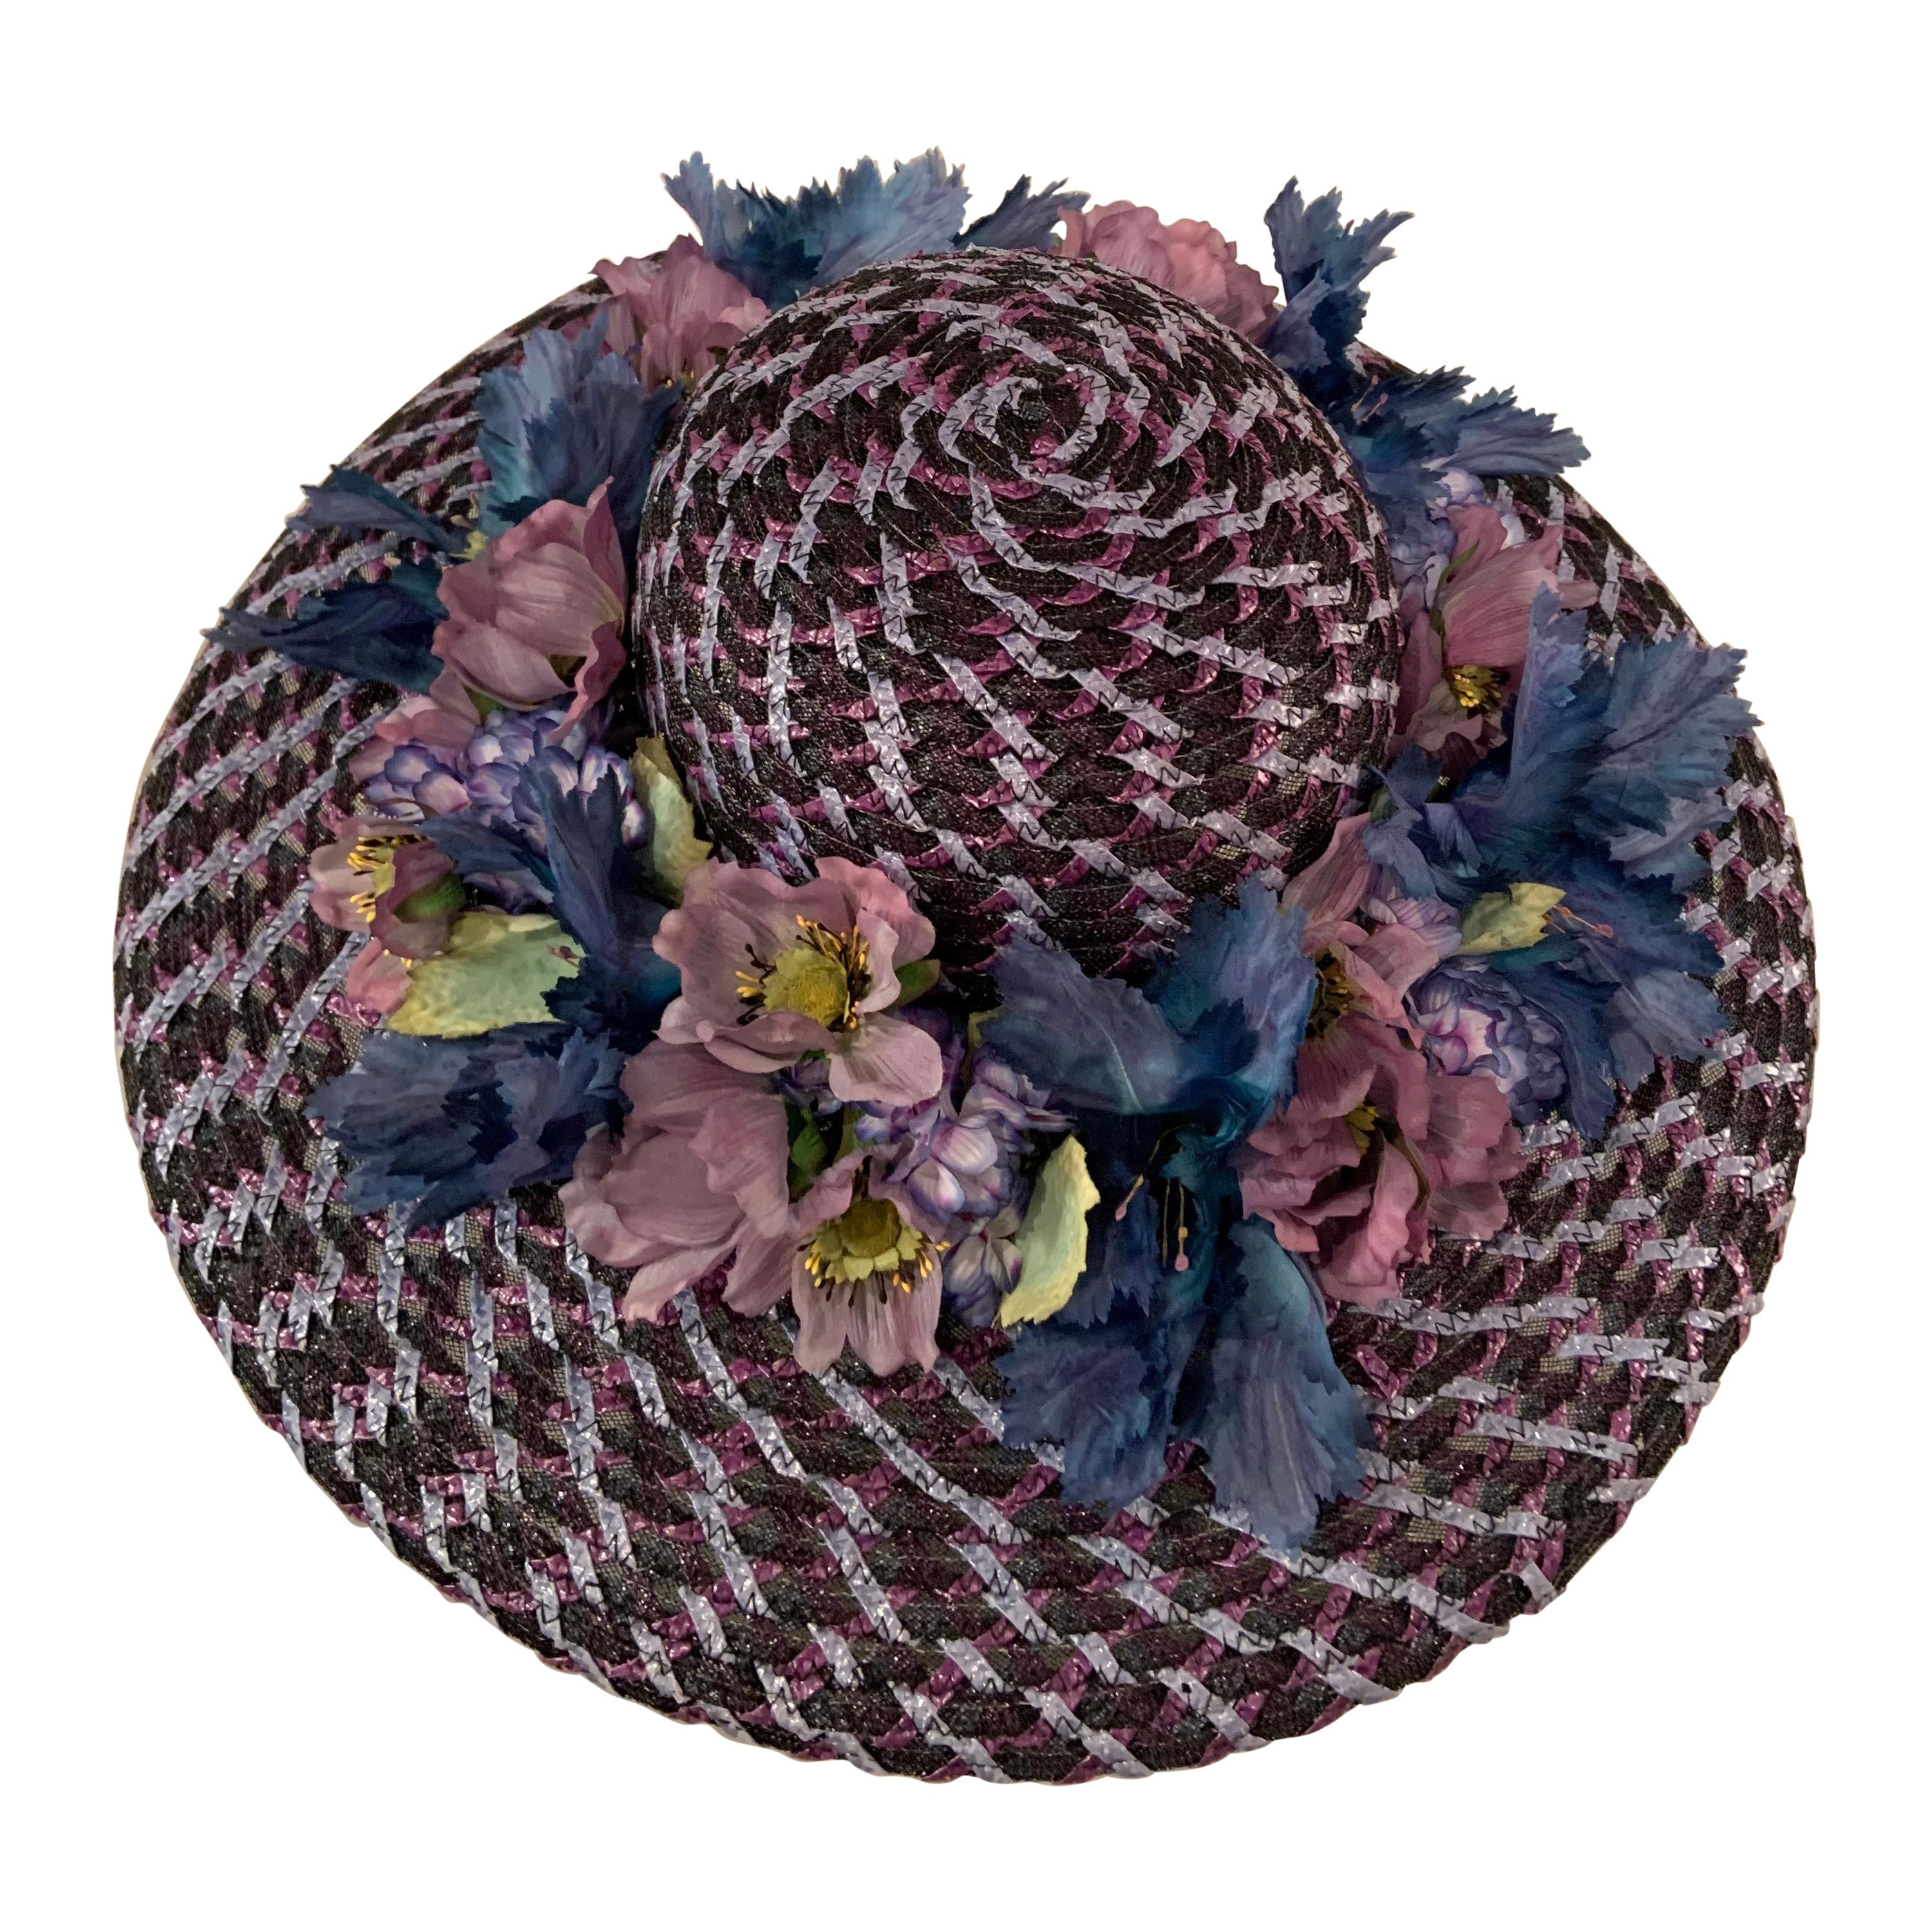 Kentucky Derby Worn Lucky Hat Tri Color Woven Straw and Silk Flowers Eric Javits